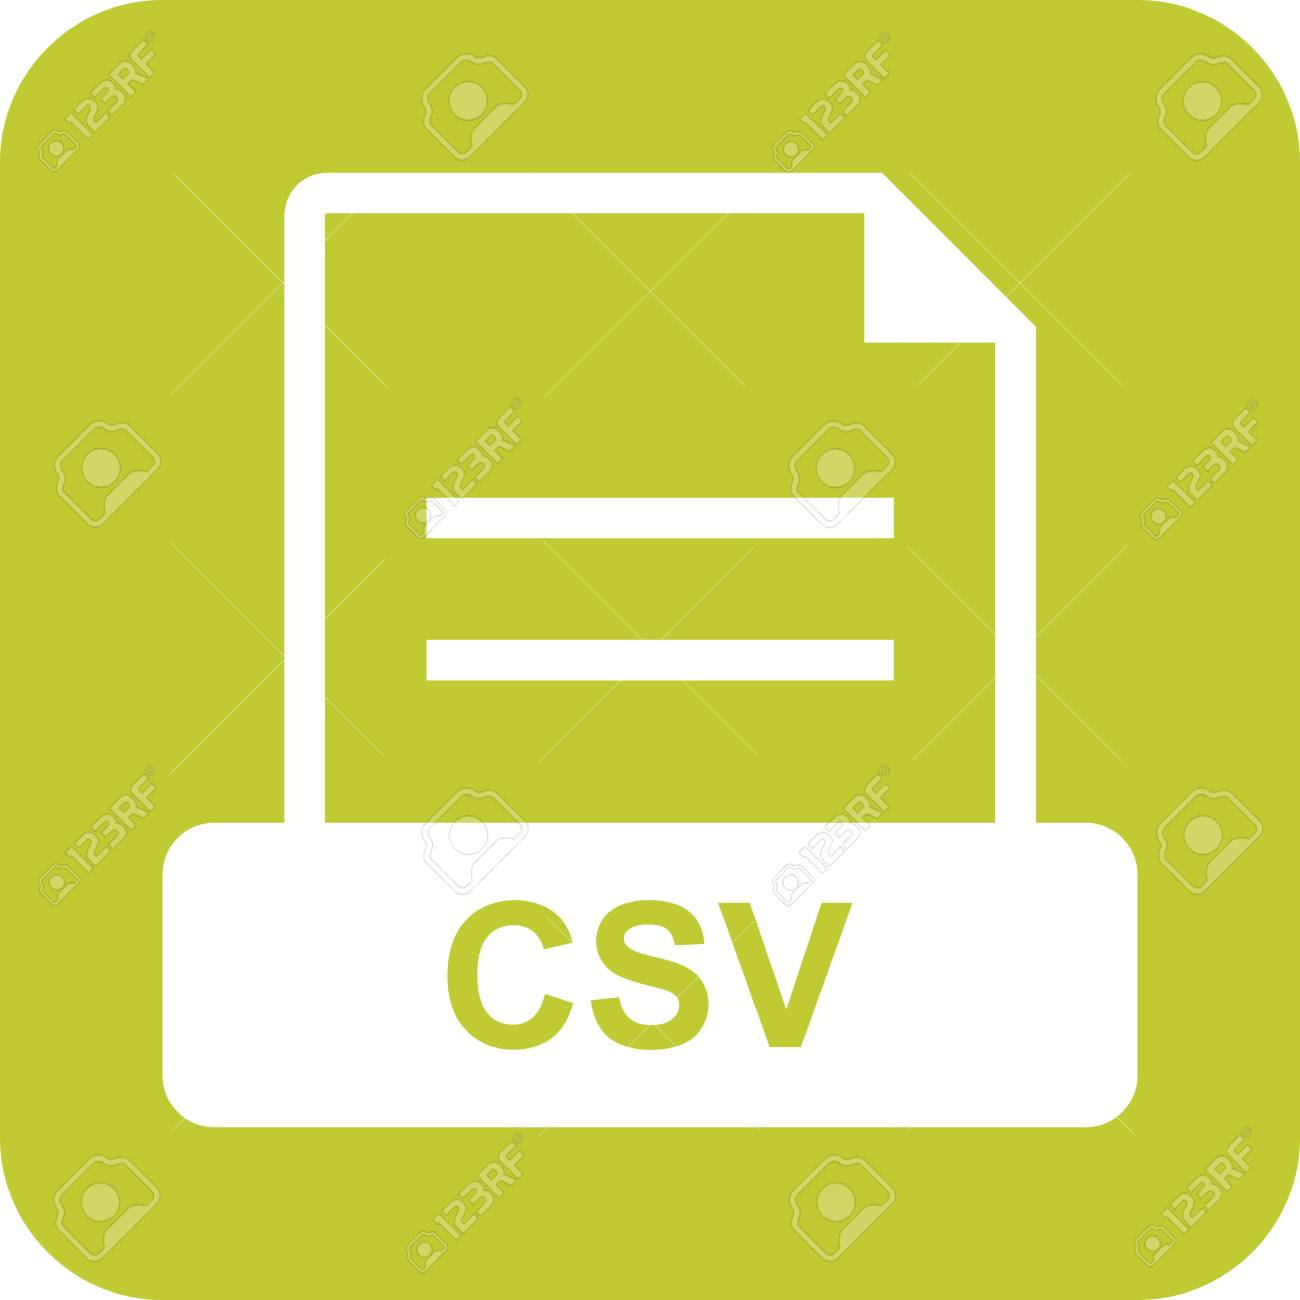 file extension csv icon vector image can also be used for